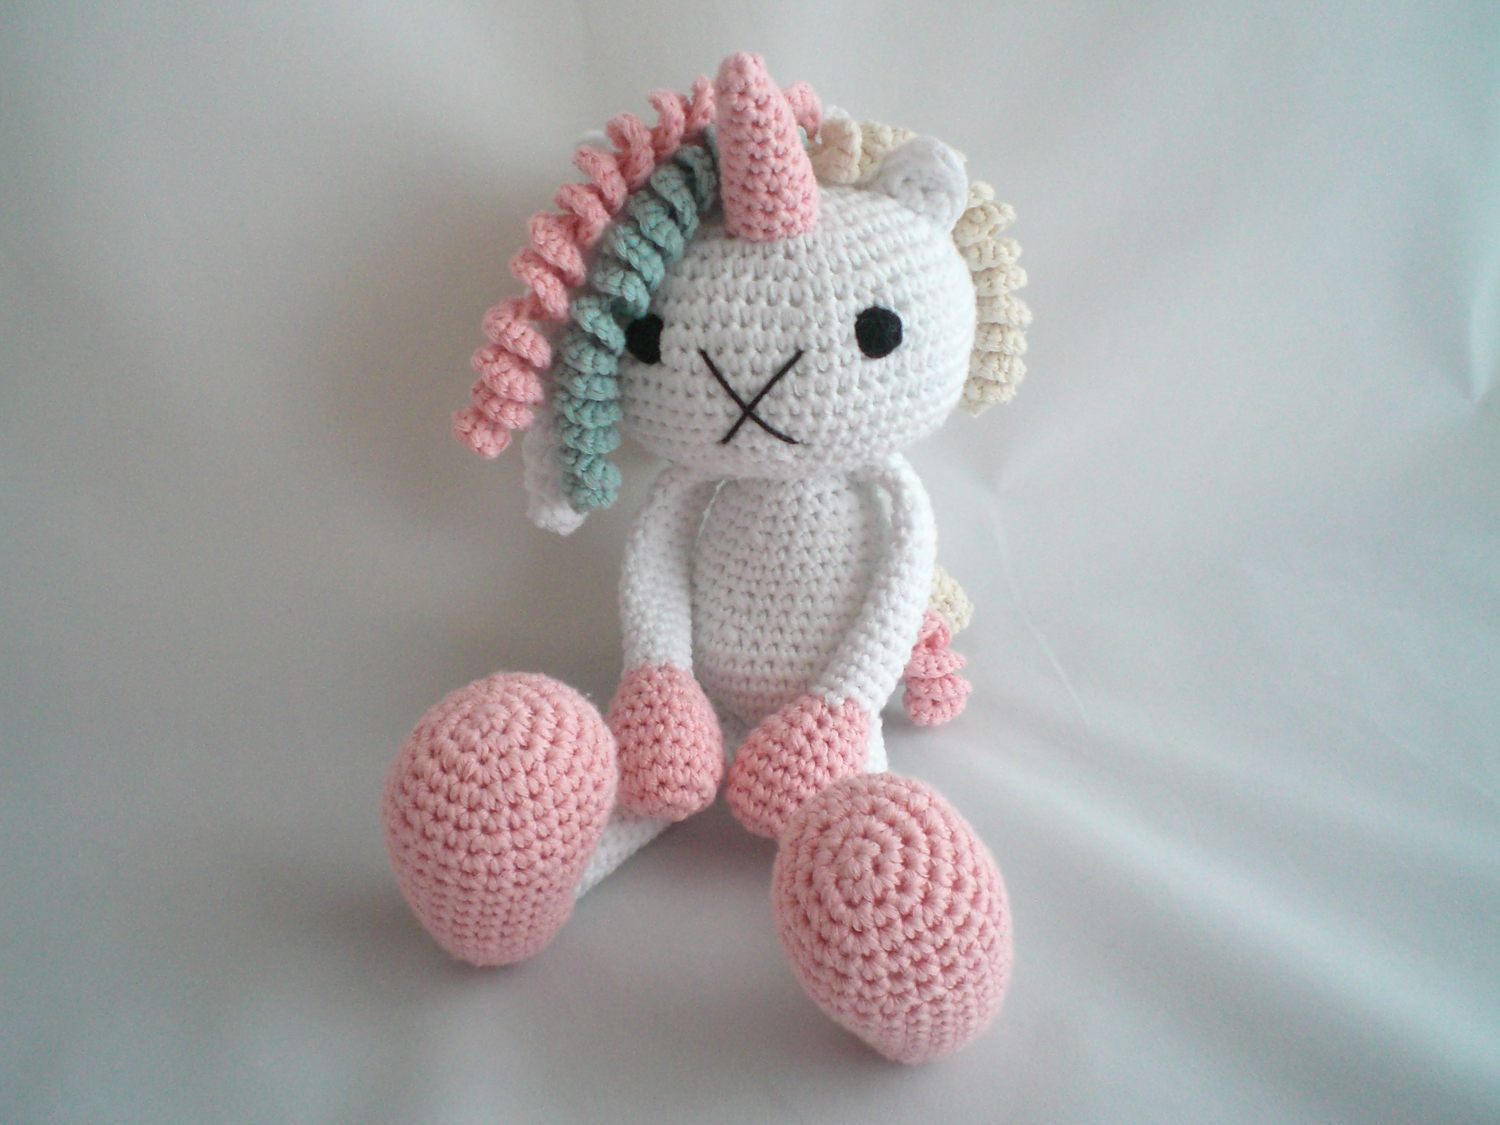 Unicorn toys images  Crochet Unicorn  Amigurumi Unicorn  Crochet Plush Unicorn Toy